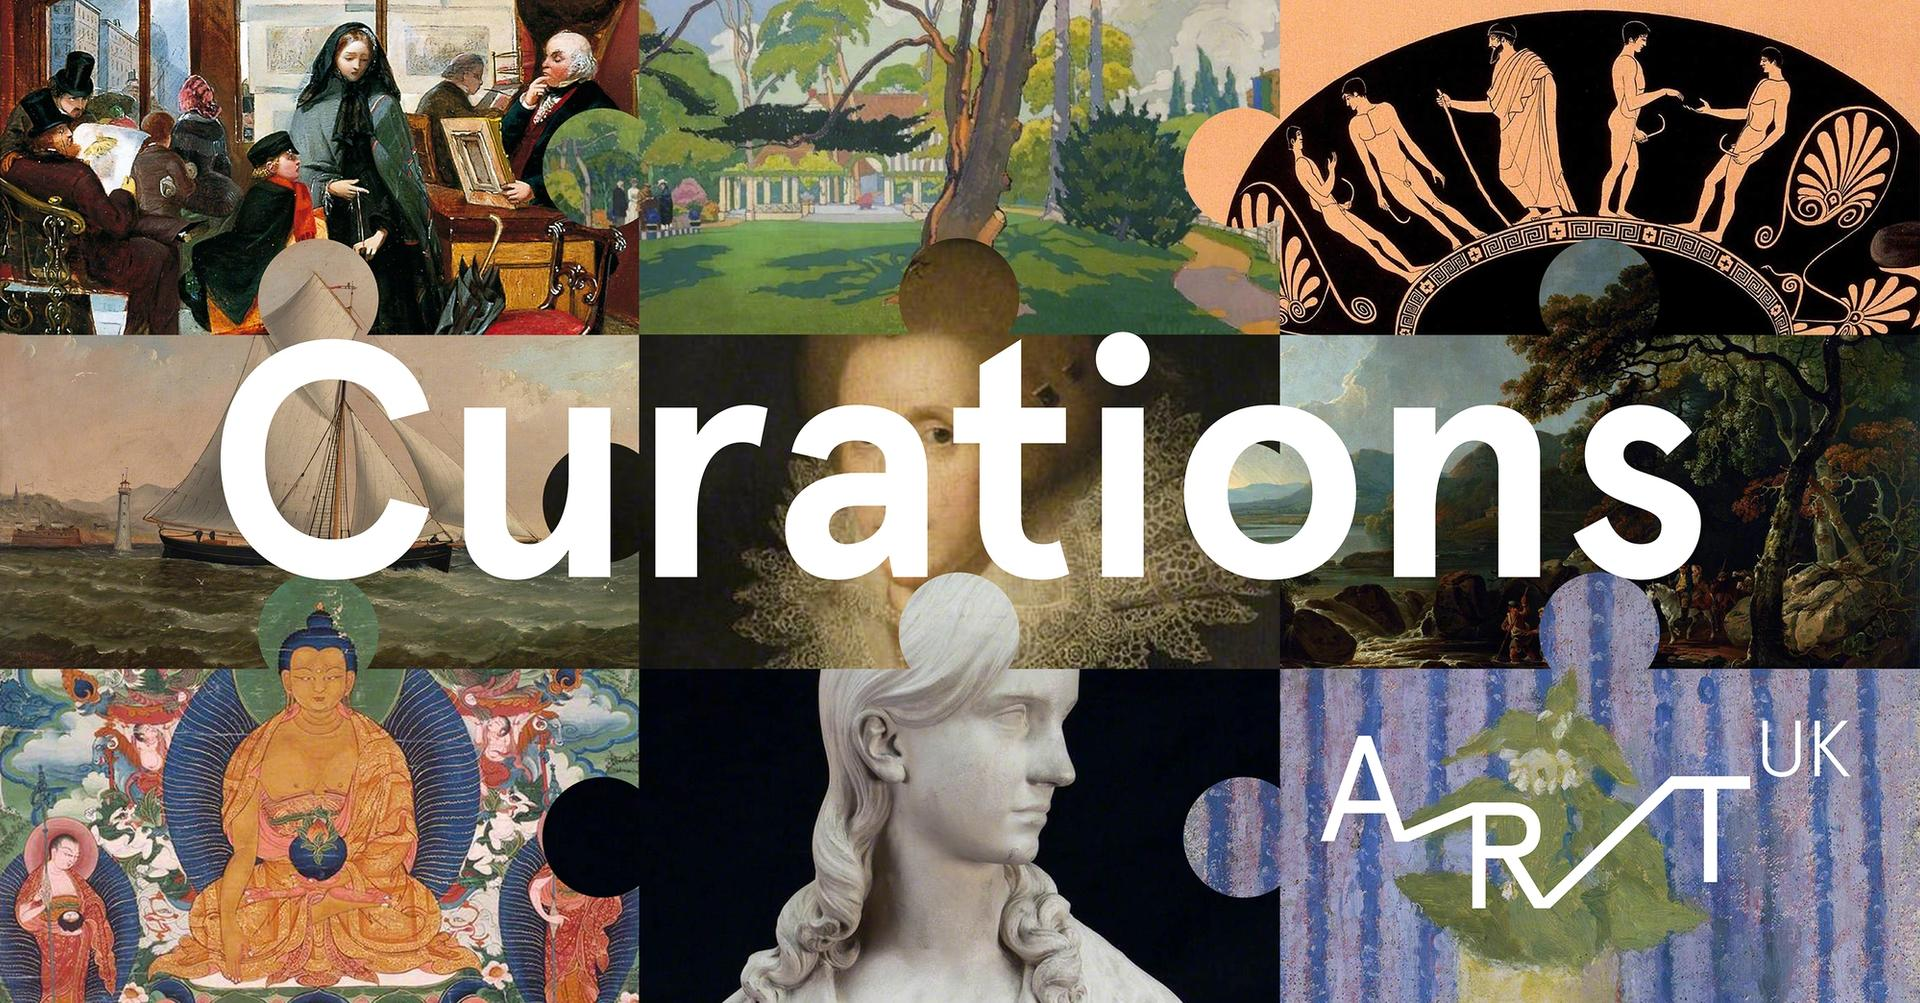 A new online tool called Curations allows institutions to mount virtual shows